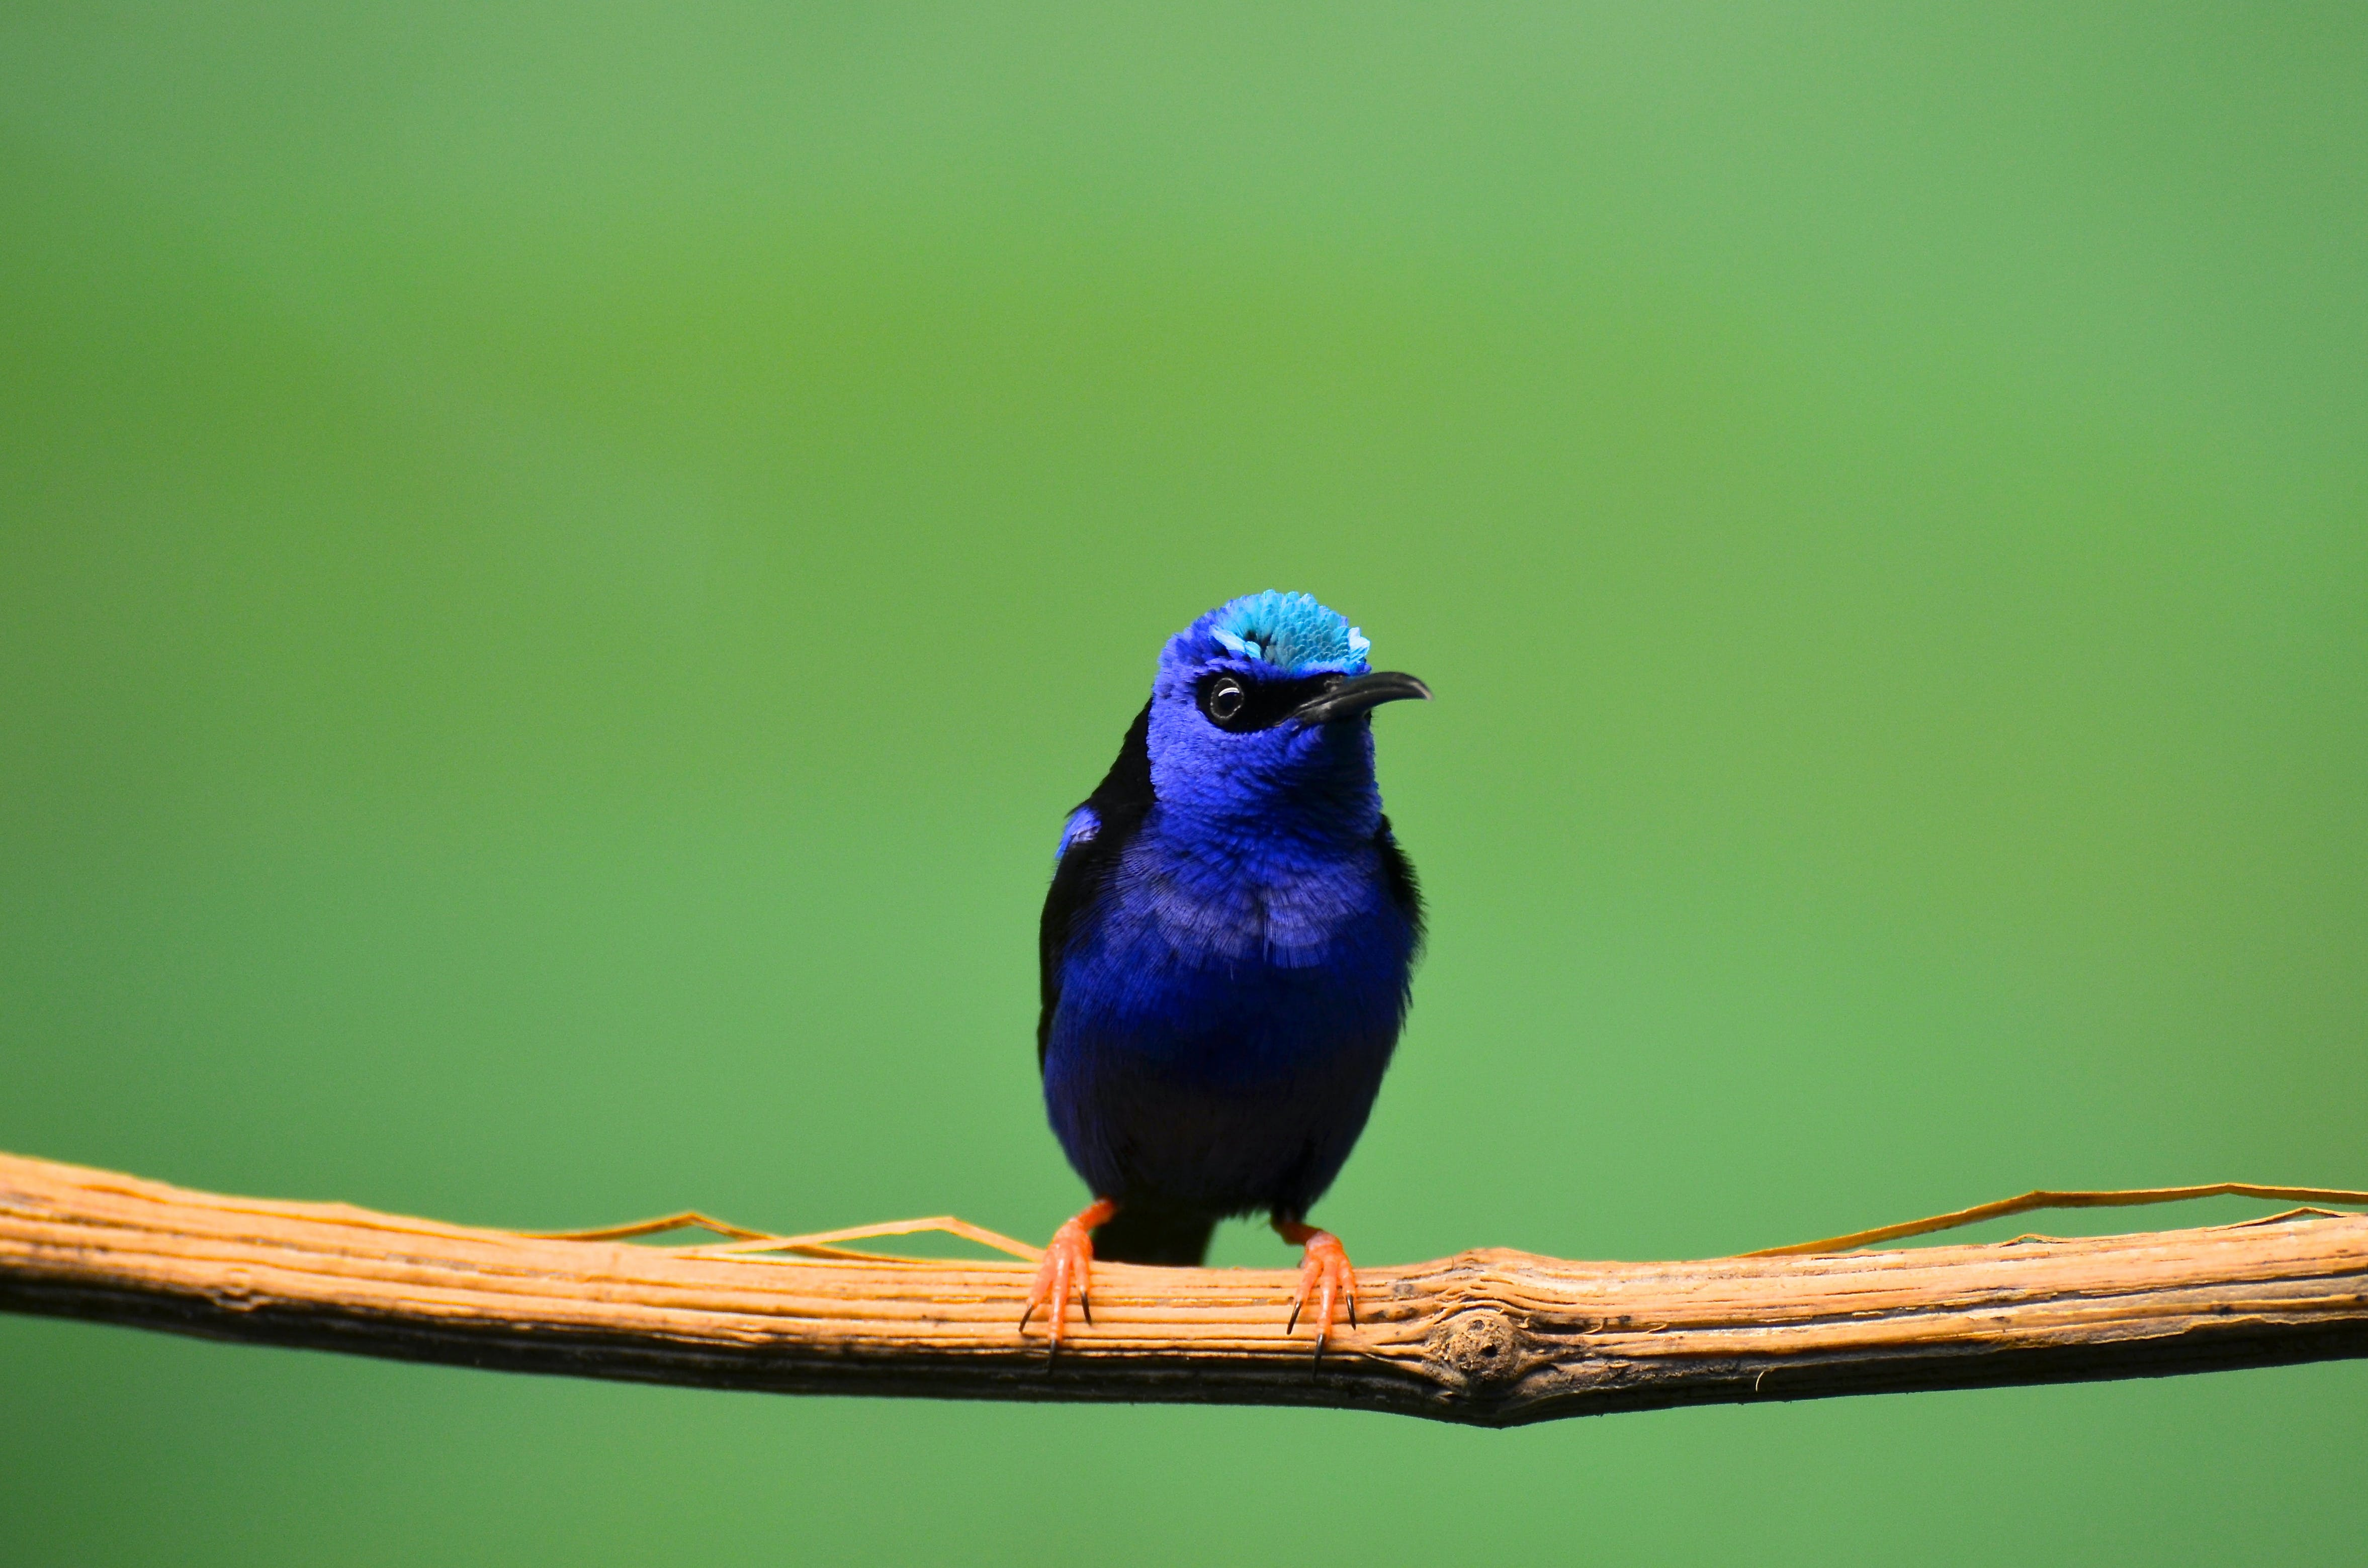 Blue Bird Perched On Tree Branch